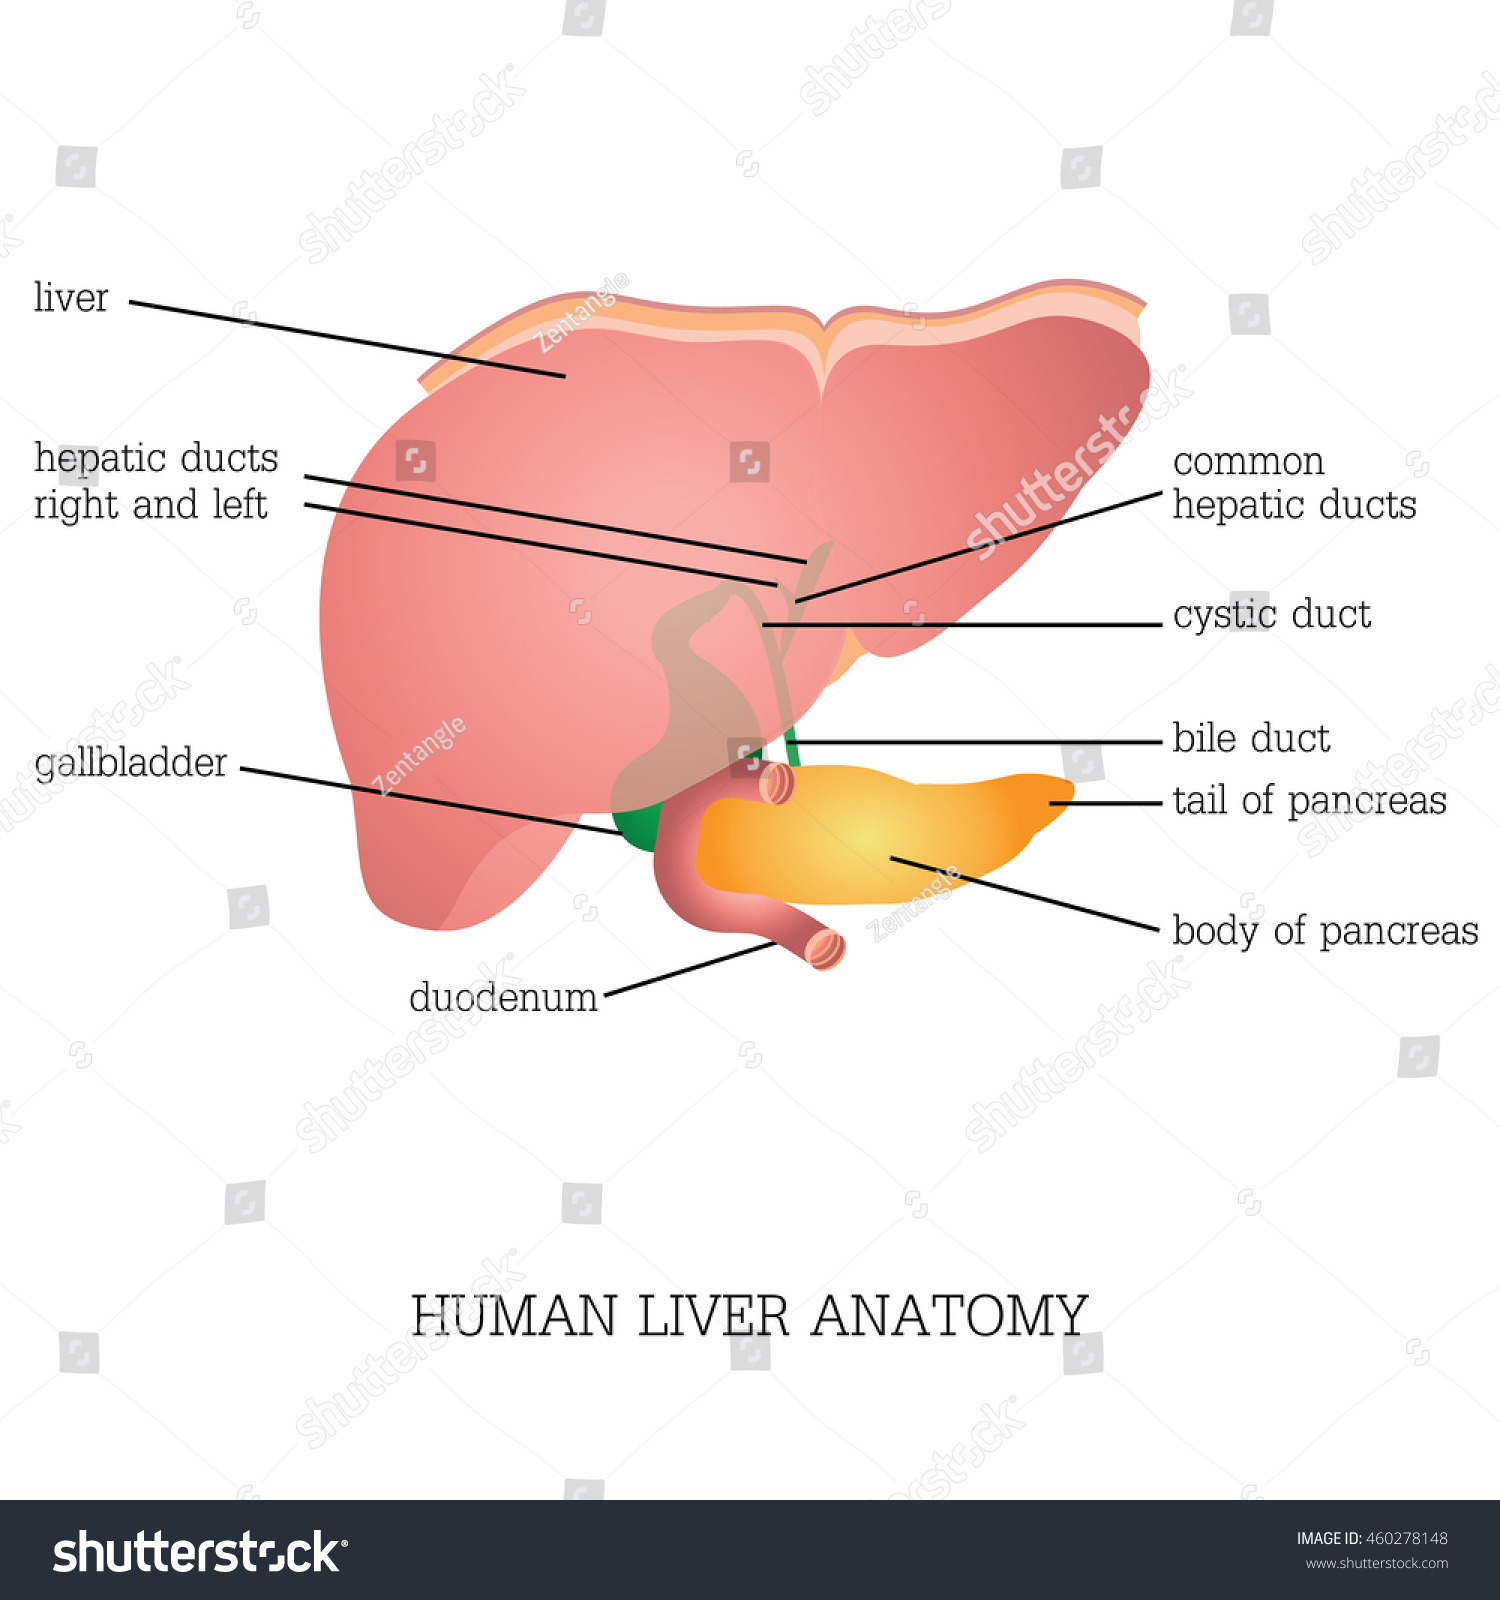 Structure Function Human Liver Anatomy System Stock Photo (Photo ...